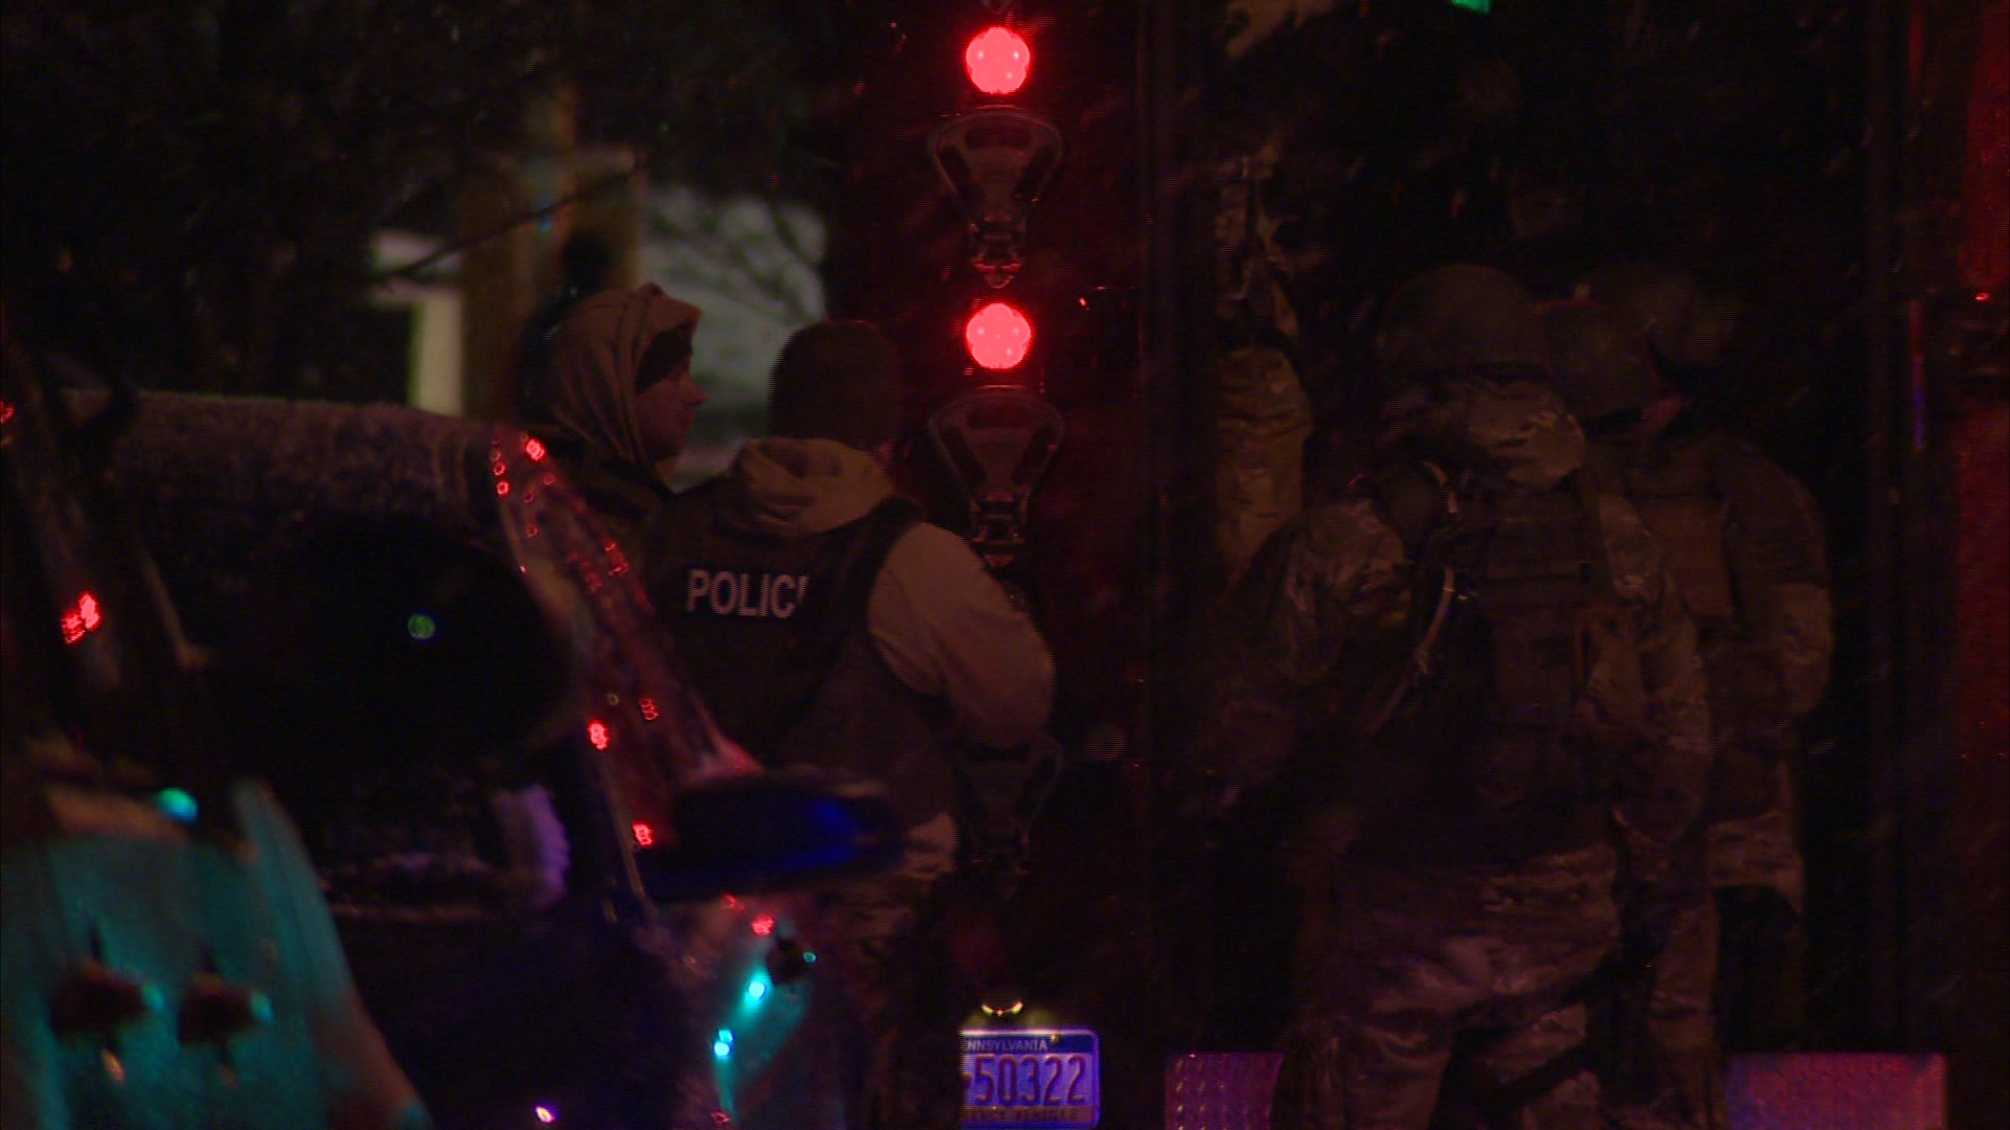 SWAT units were called to Bennett Street and North Lang Avenue Wednesday night, Allegheny 911 confirmed.